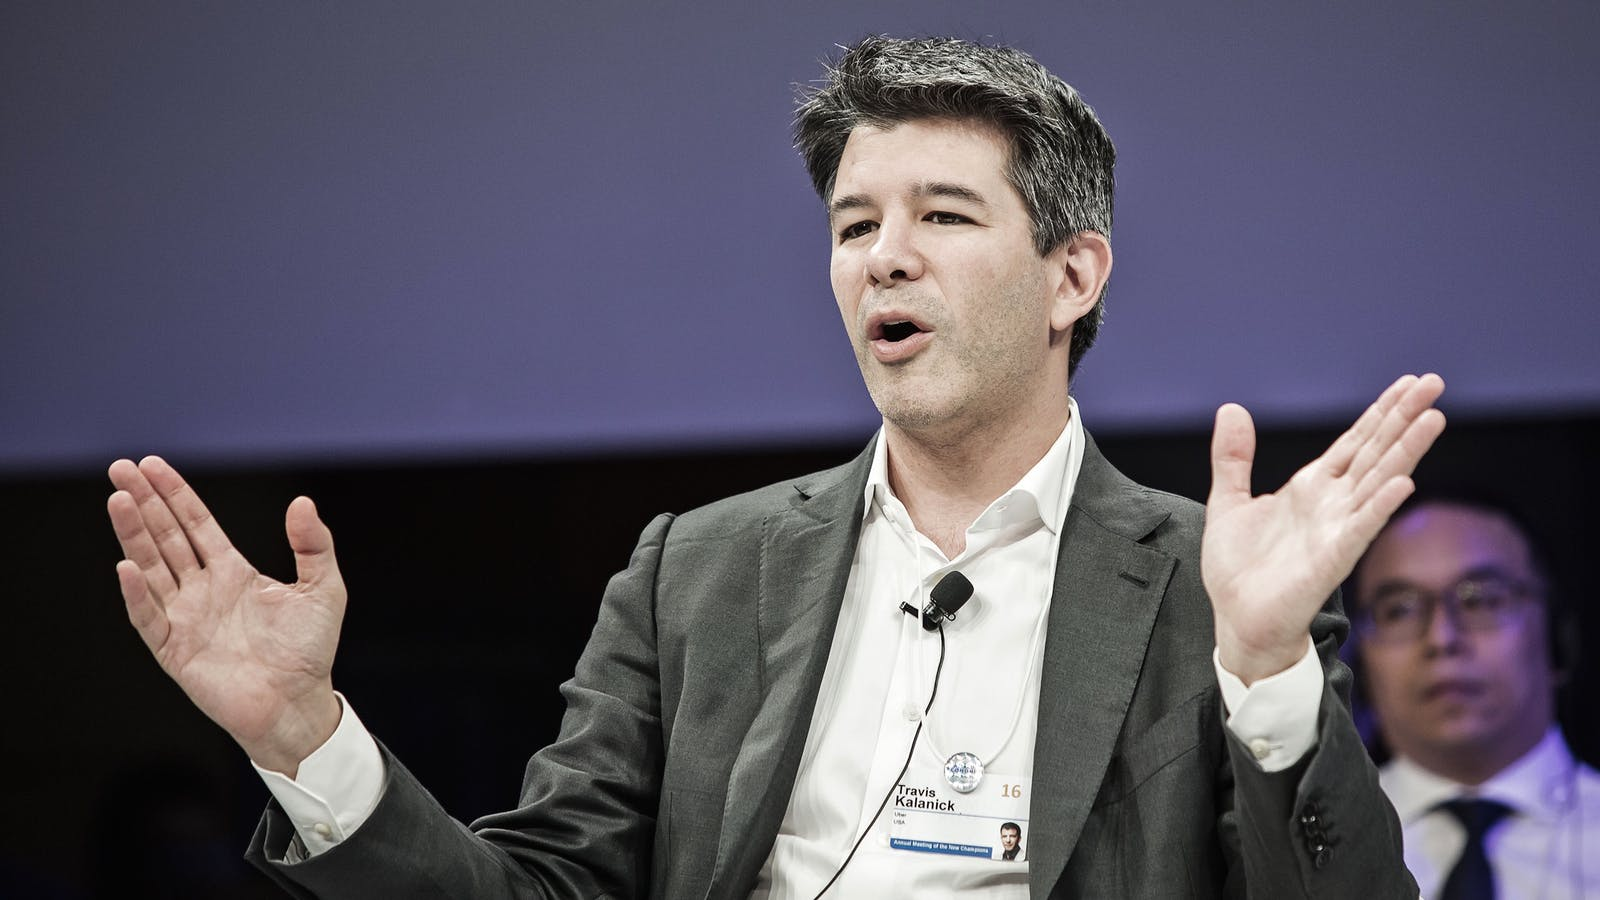 Uber's former CEO Travis Kalanick. Photo by Bloomberg.